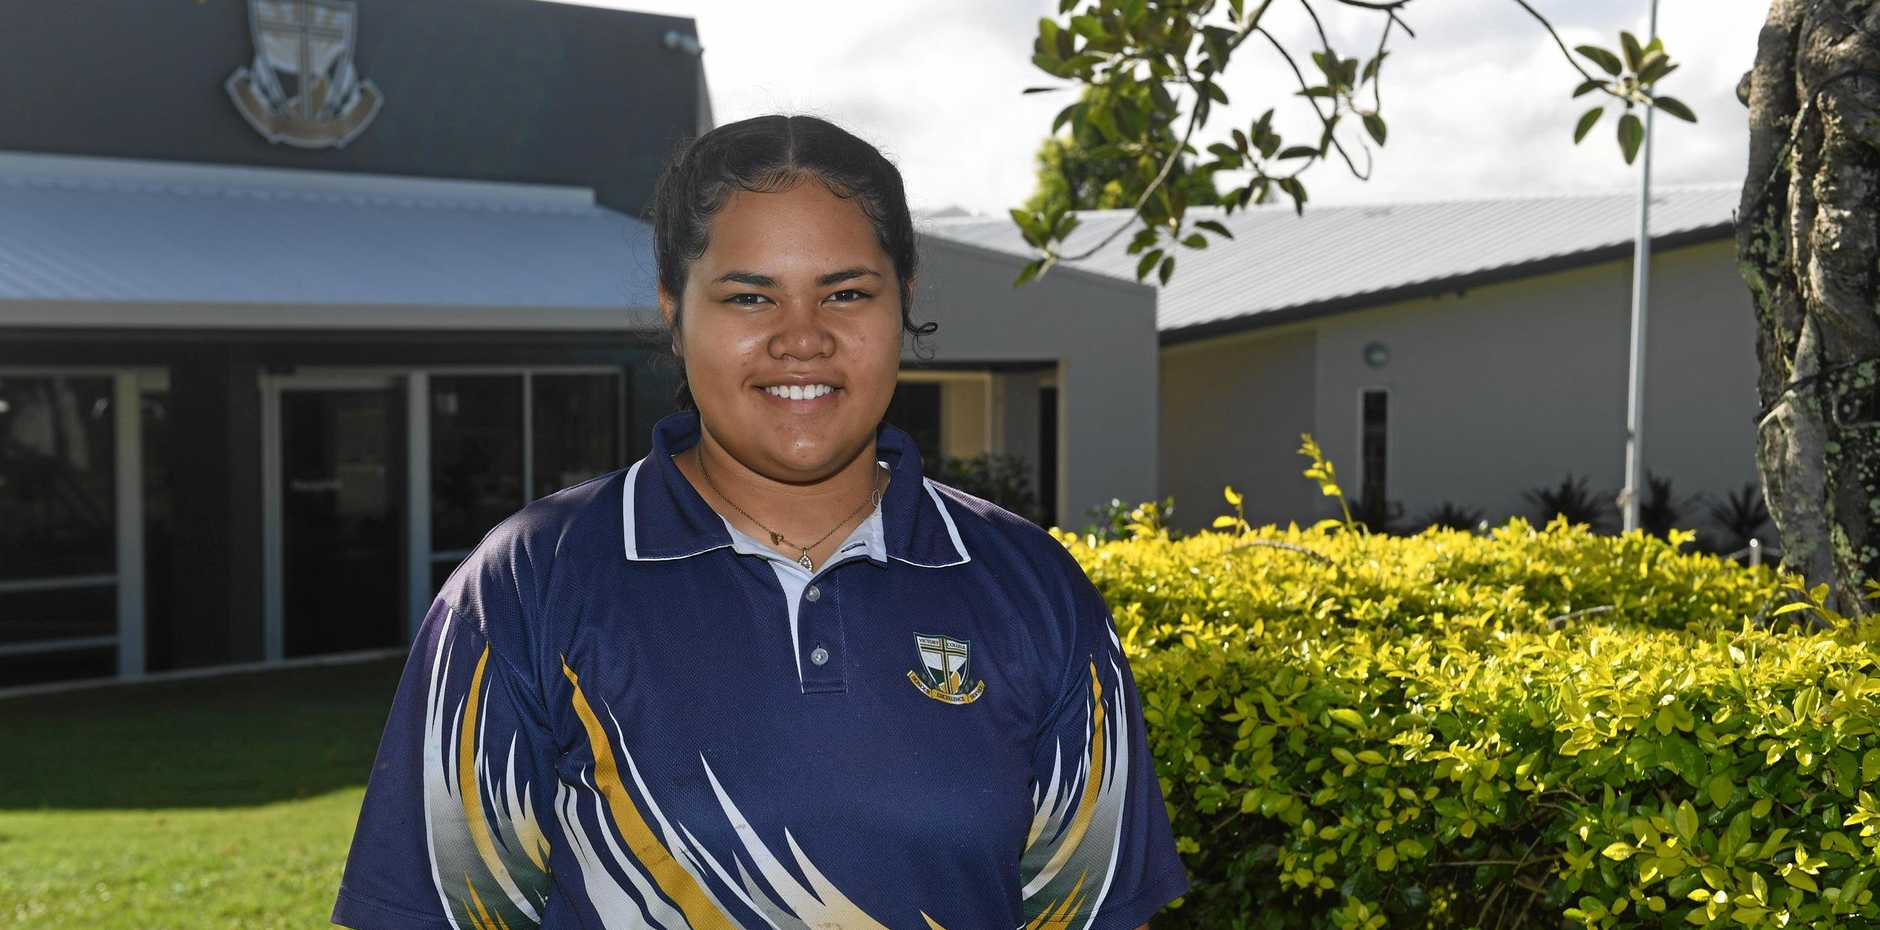 SPORTING LIFE: Victory College star student Ruby Aitofi has a full schedule of sporting commitments, but still finds time for multiple musical interests.